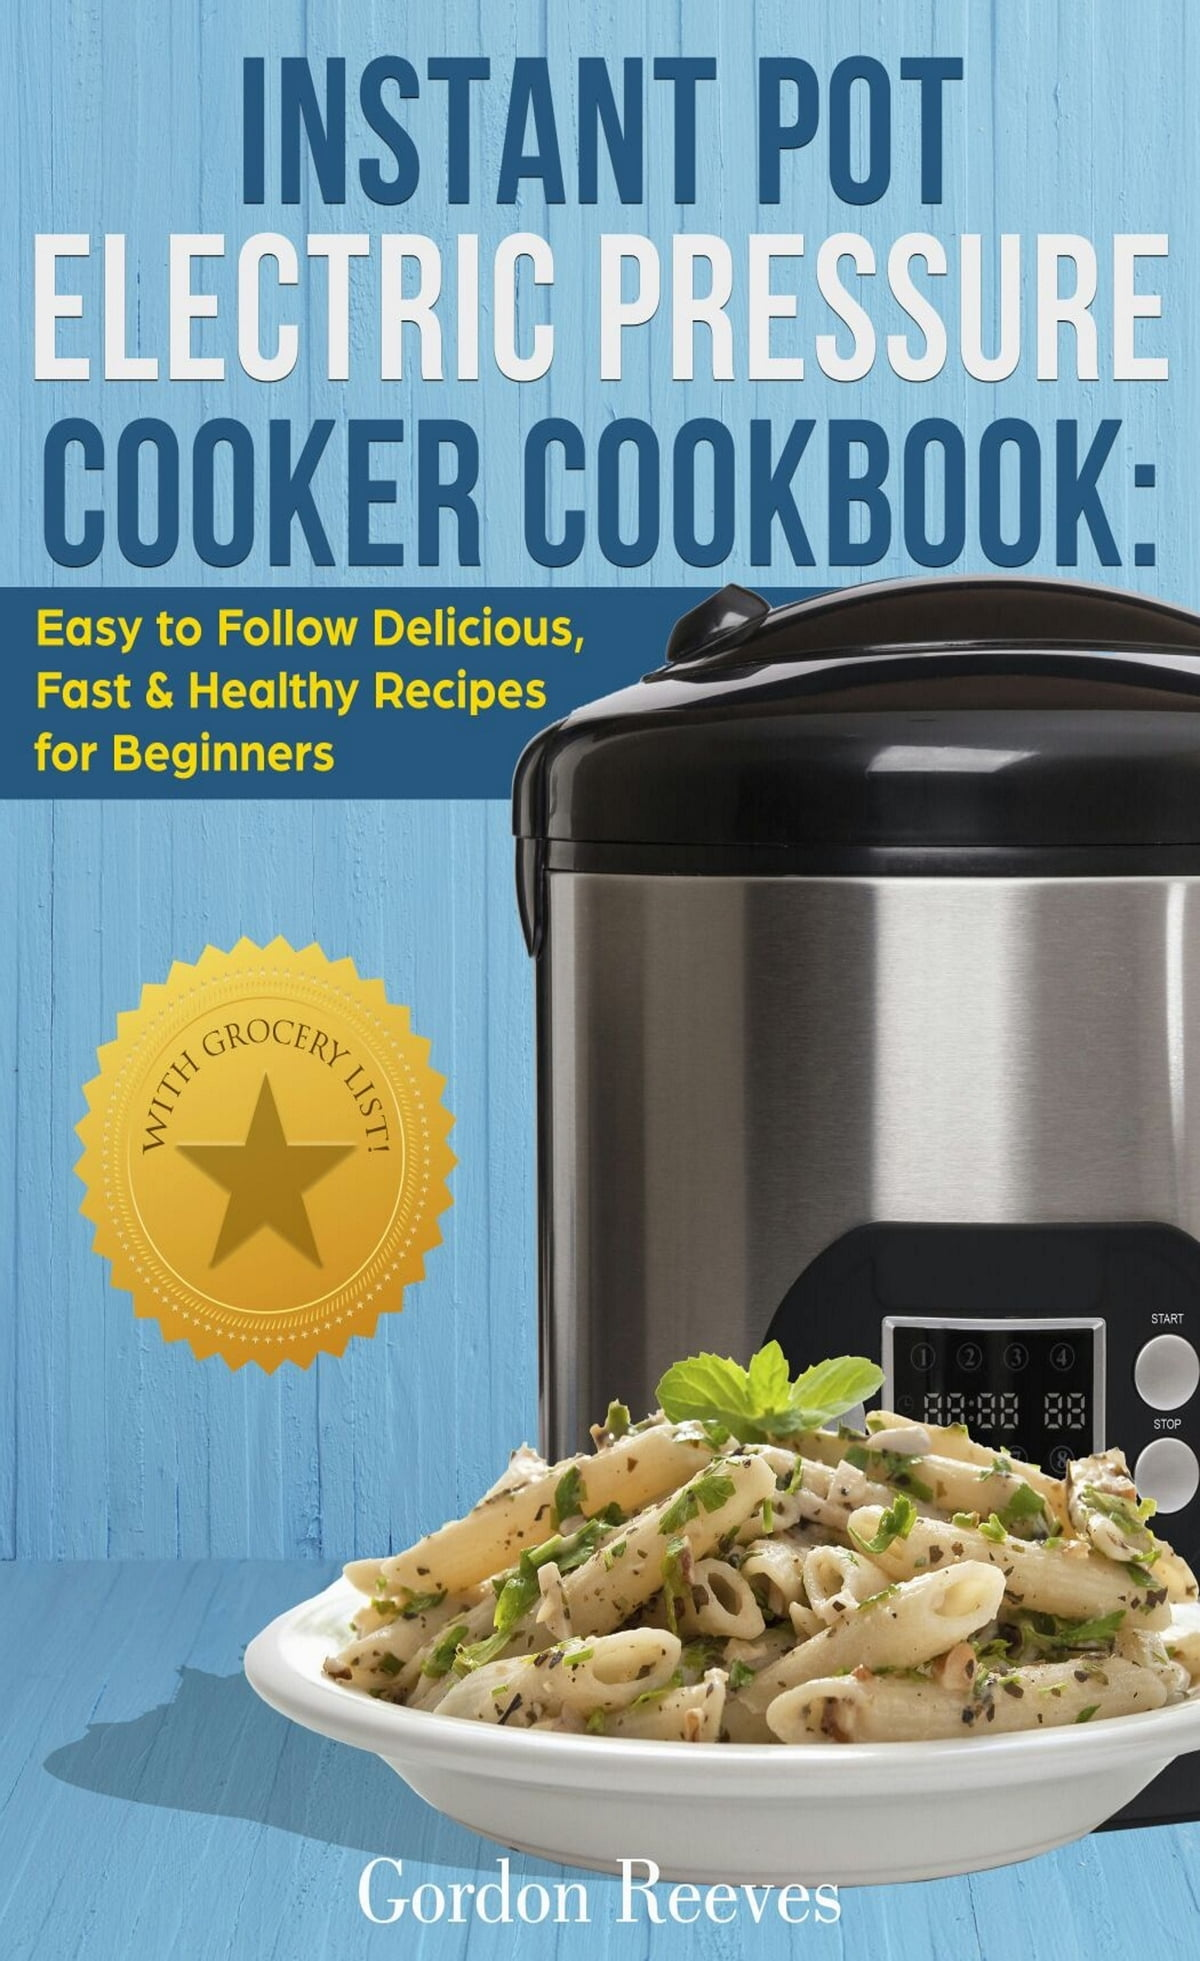 Instant Pot Electric Pressure Cooker Cookbook: Easy to Follow Delicious,  Fast & Healthy Recipes for Beginners eBook by Gordon Reeves - 9781370324279  ...